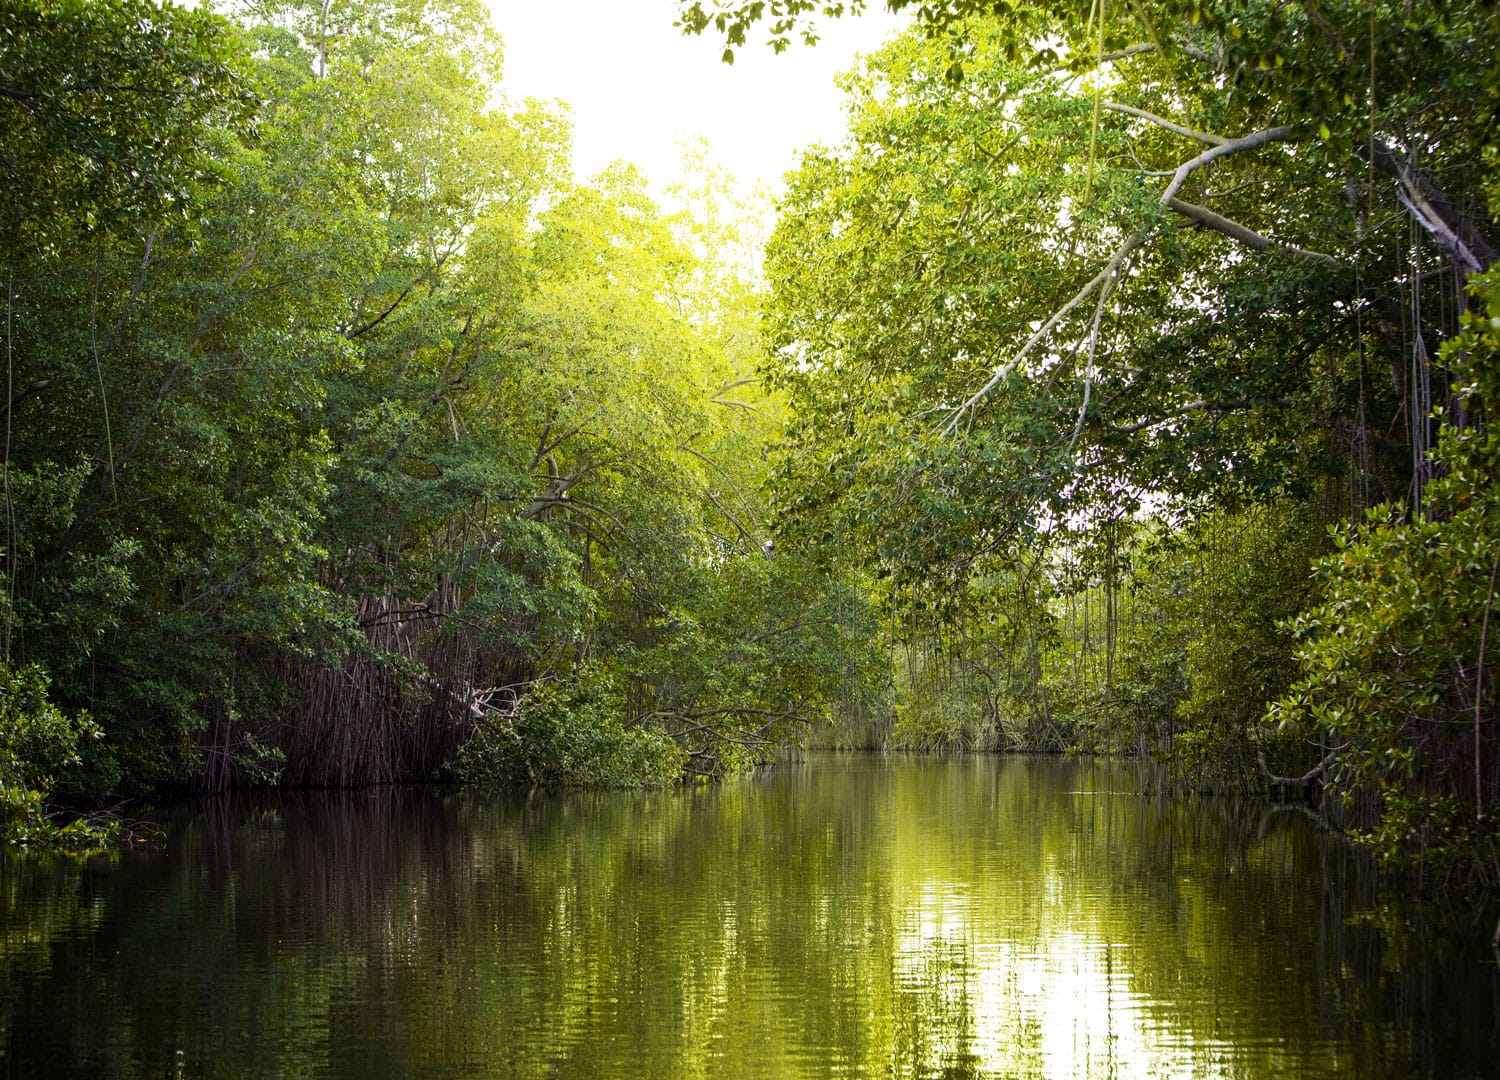 Tropical mangrove forest on the Black River, Jamaica